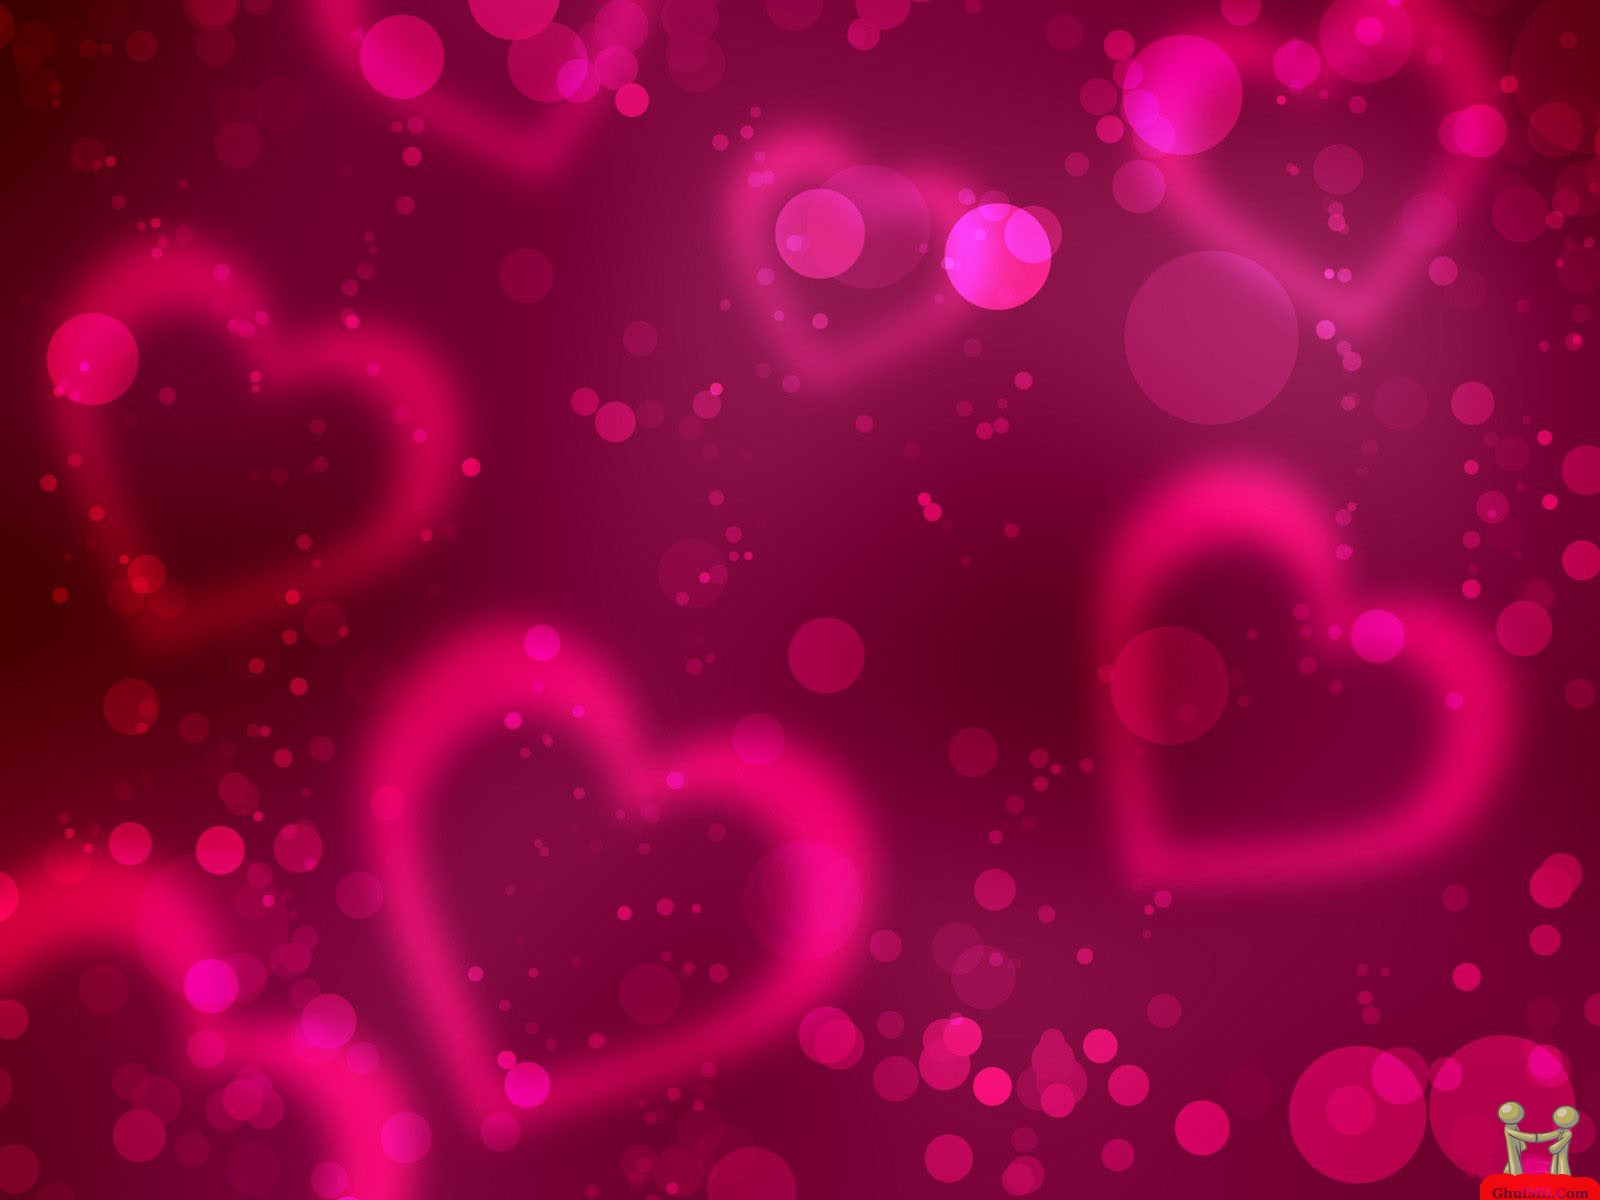 Love Images Hd 3d Wallpaper : 3D Love Heart Wallpaper 4 cool Hd Wallpaper - Hdlovewall.com